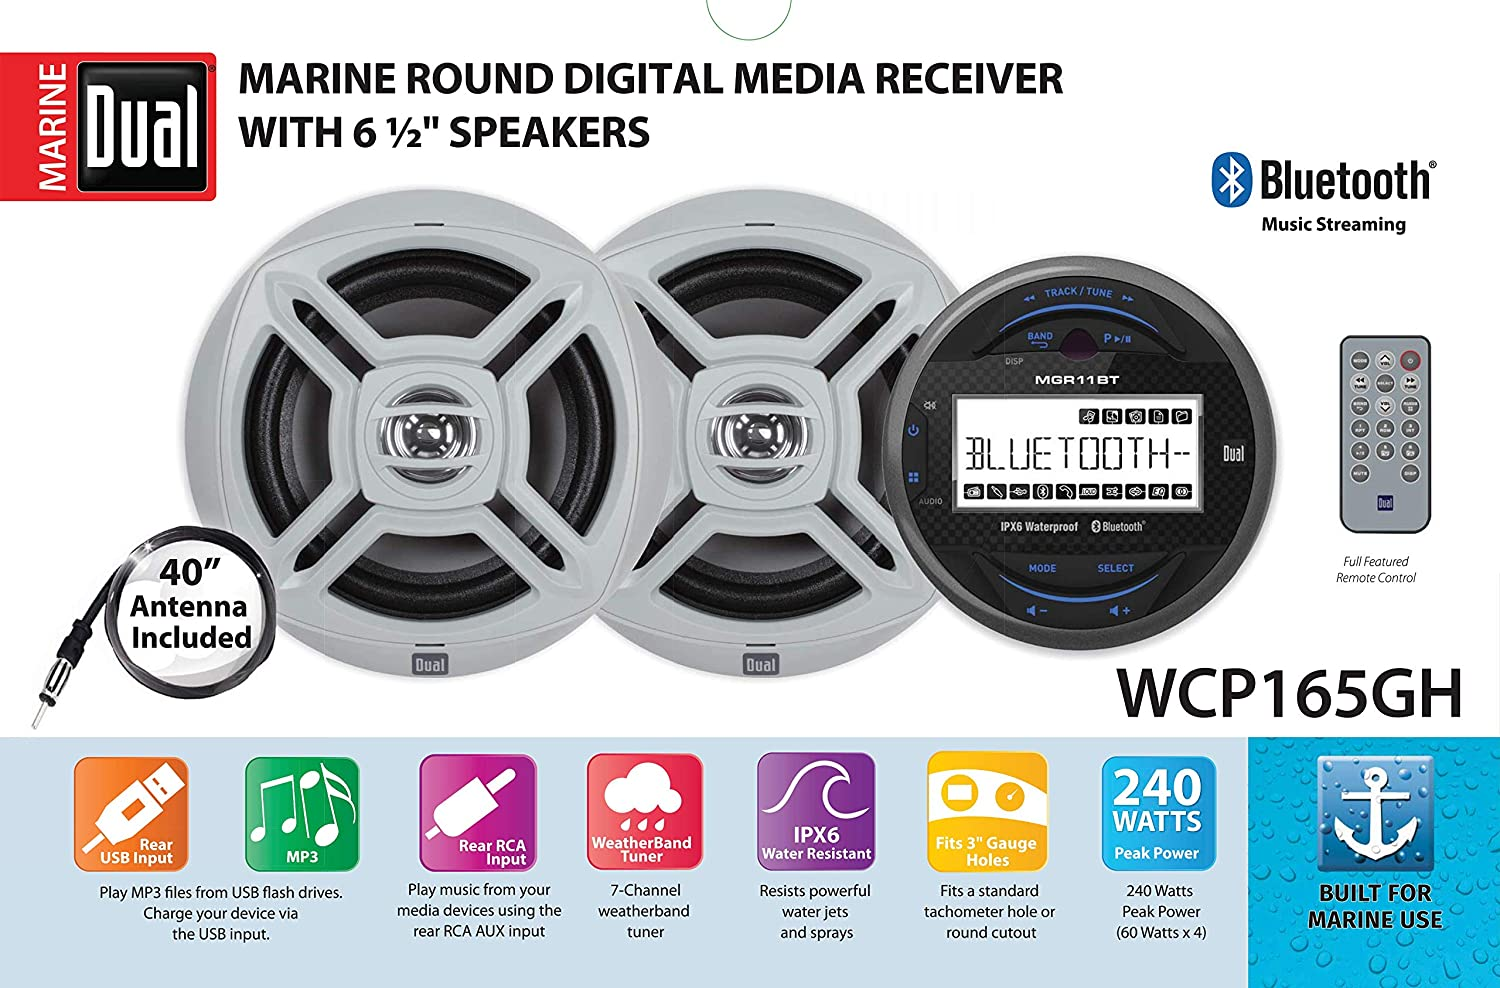 Dual Electronics WCP165GH 2.5 inch LCD Waterproof Marine Stereo Receiver with Built-in Bluetooth Weather Band Tuner Two 6.5 inch Dual Cone Marine Speakers /& Long Range Marine Antenna